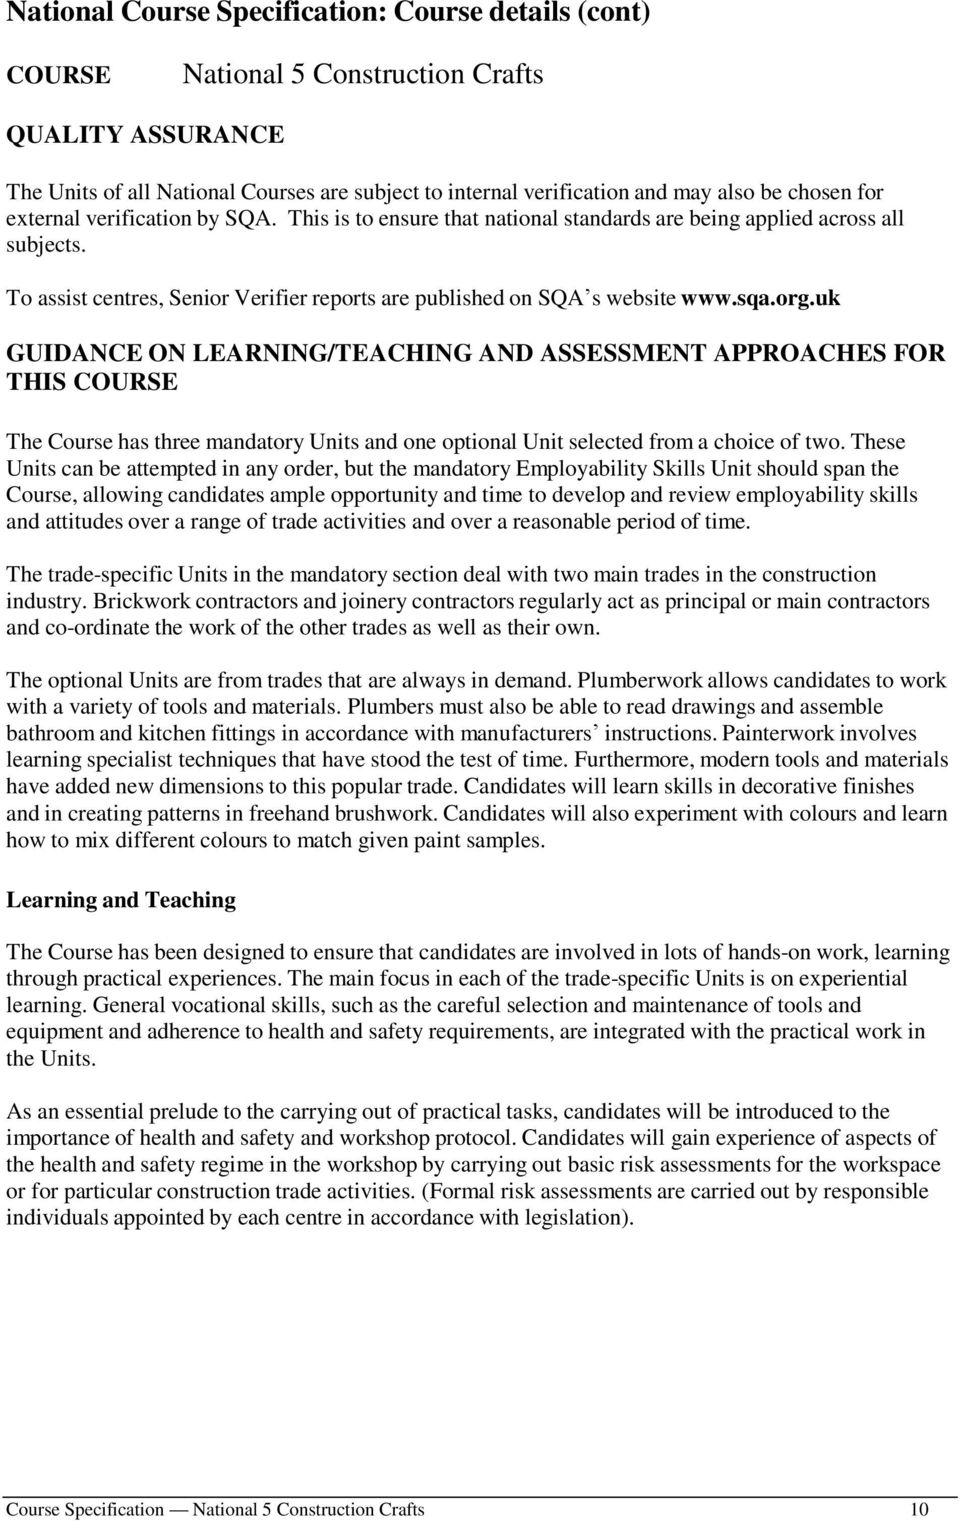 sqa.org.uk GUIDANCE ON LEARNING/TEACHING AND ASSESSMENT APPROACHES FOR THIS COURSE The Course has three mandatory Units and one optional Unit selected from a choice of two.